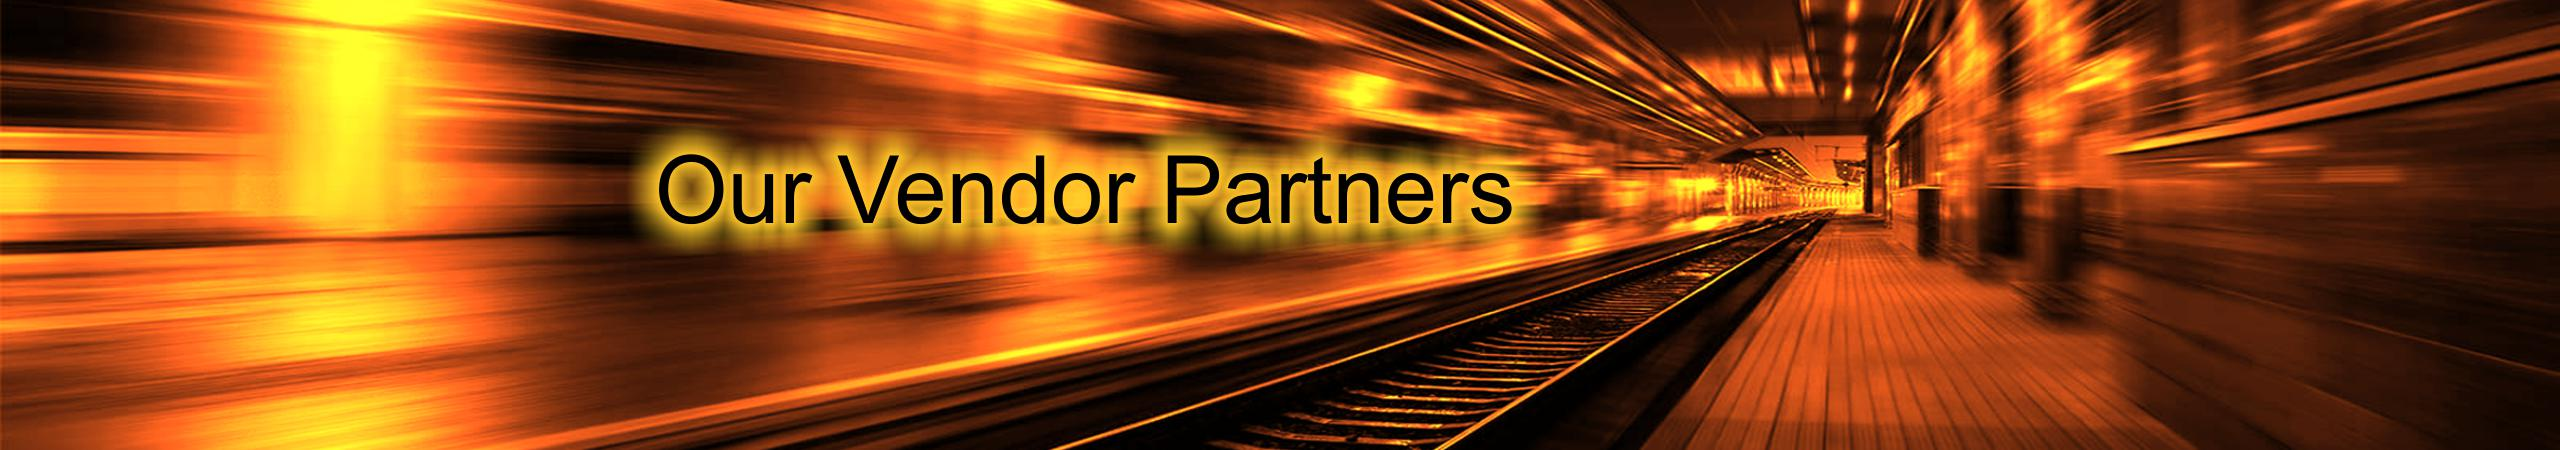 vendor-partners-2560x450-new